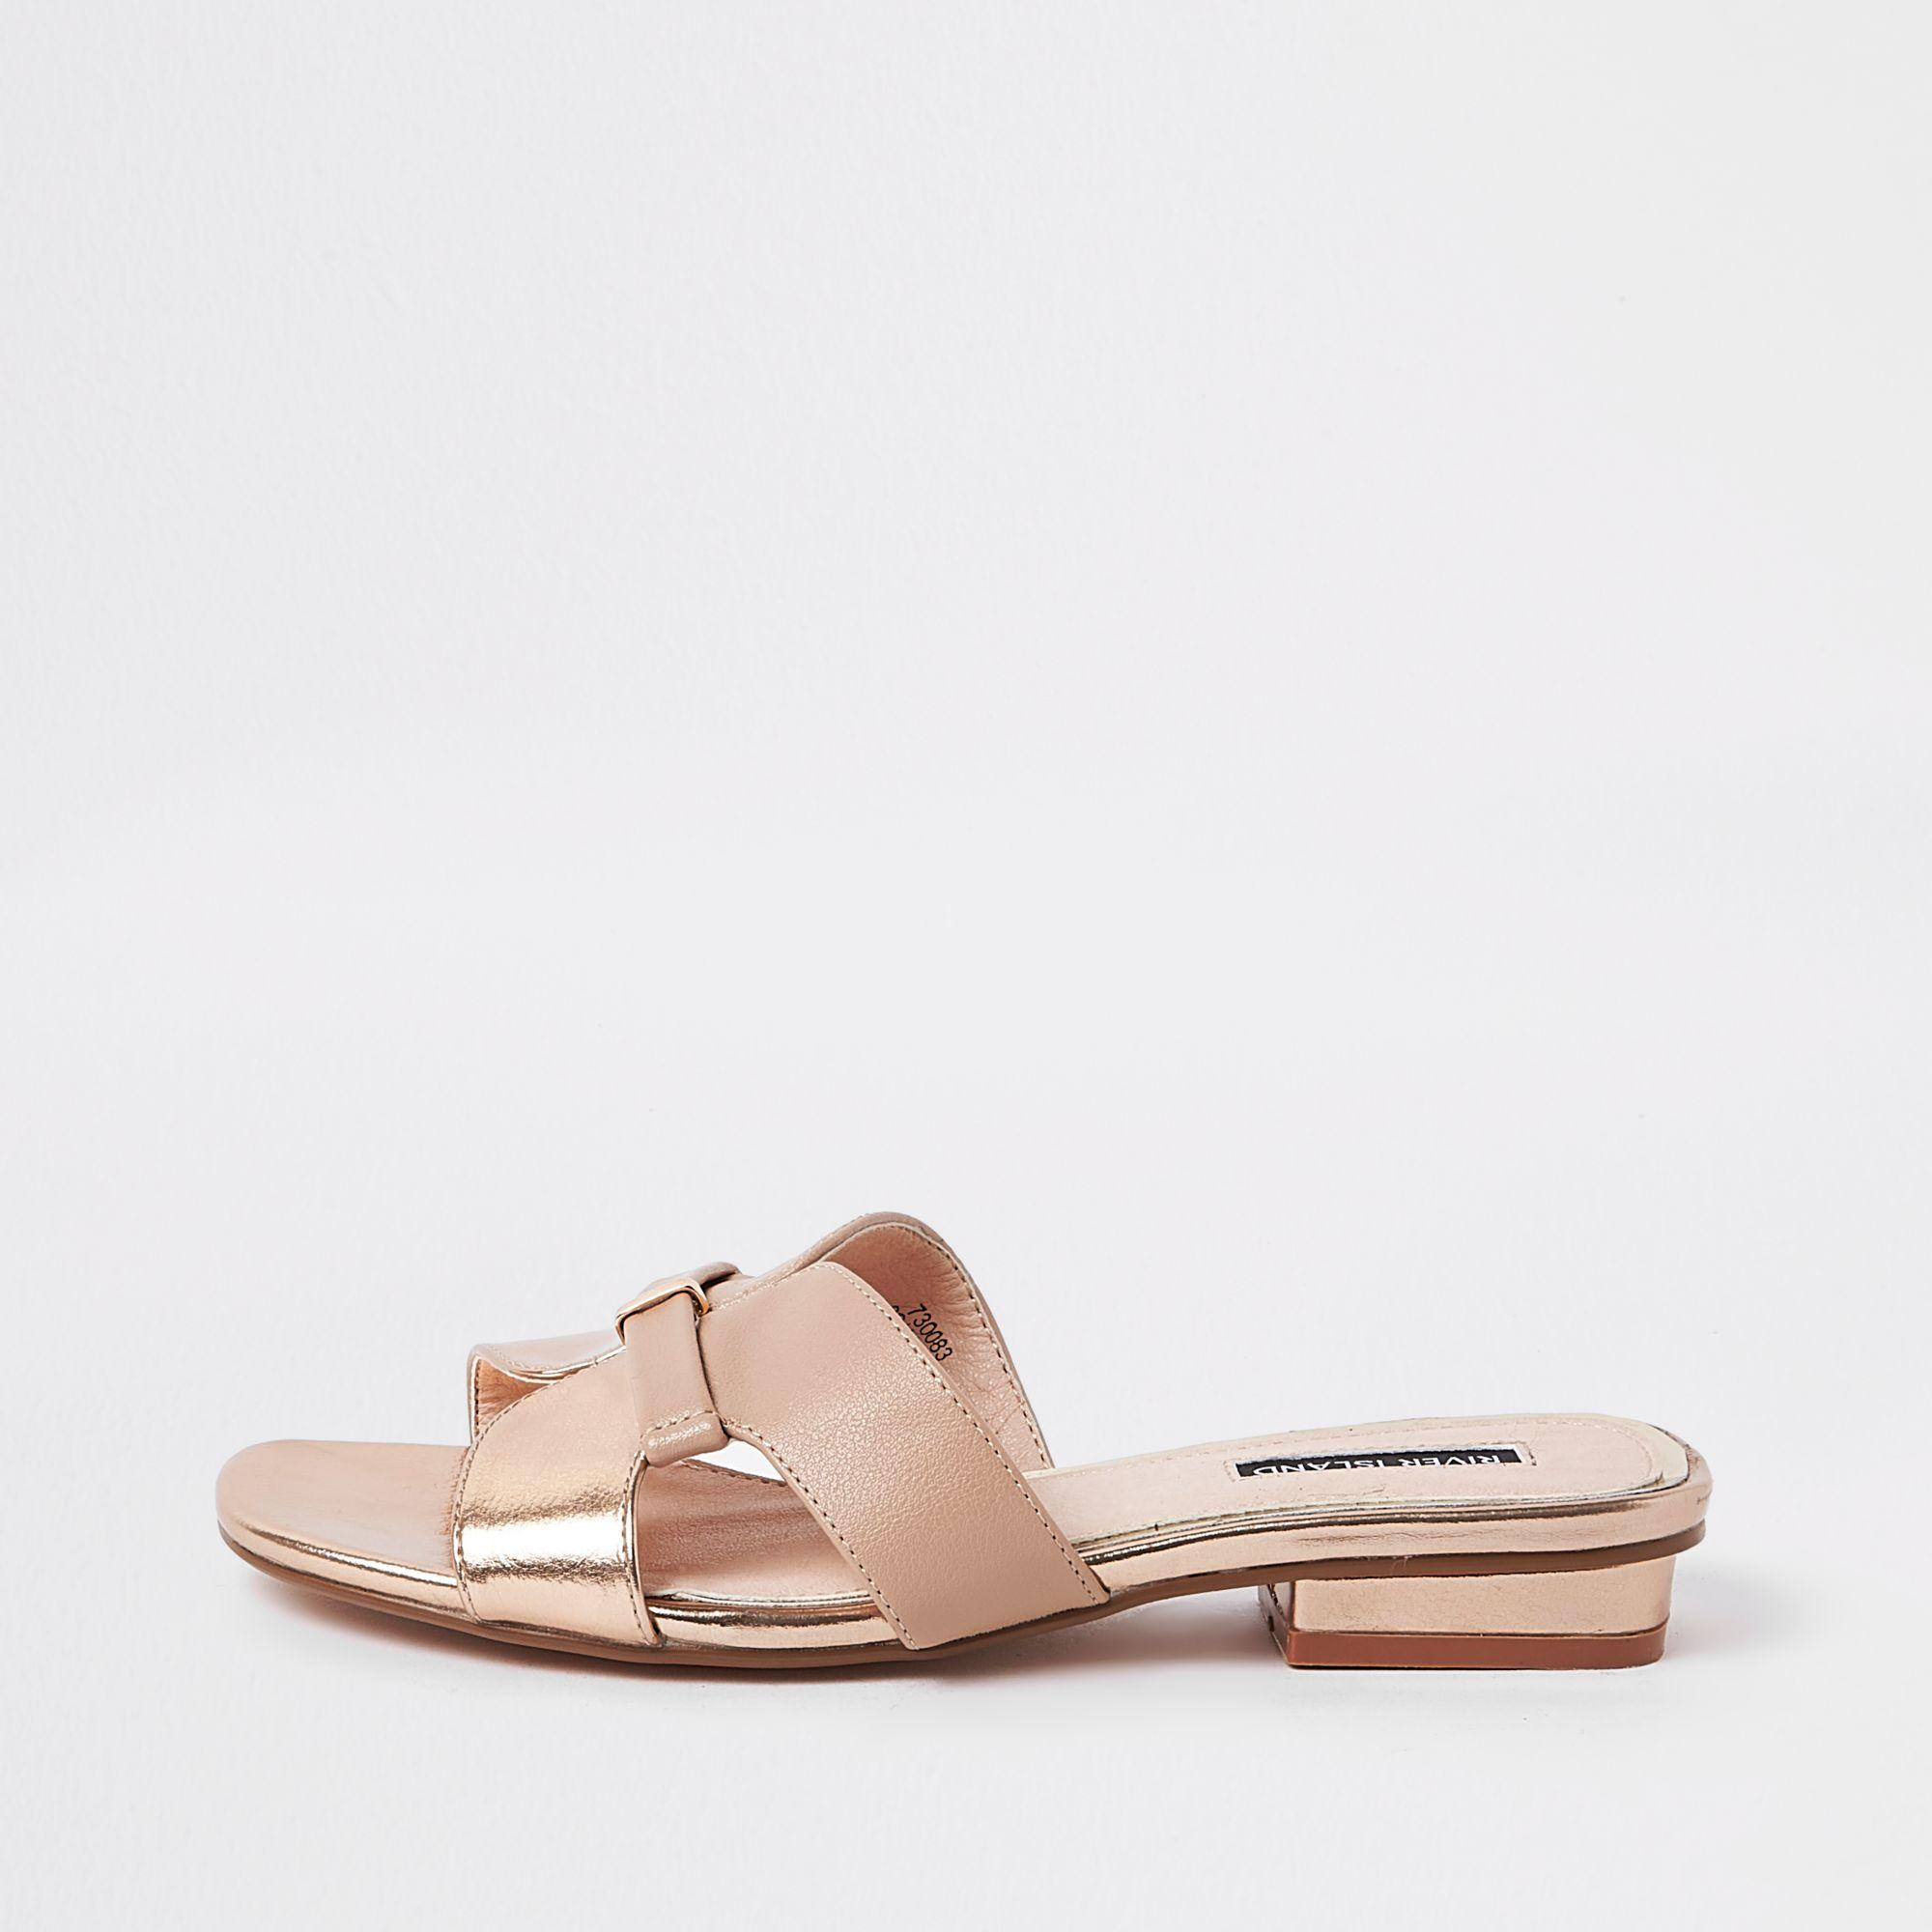 6146723b4a77 Lyst - River Island Rose Gold Faux Leather Flat Mule Sandals in Metallic